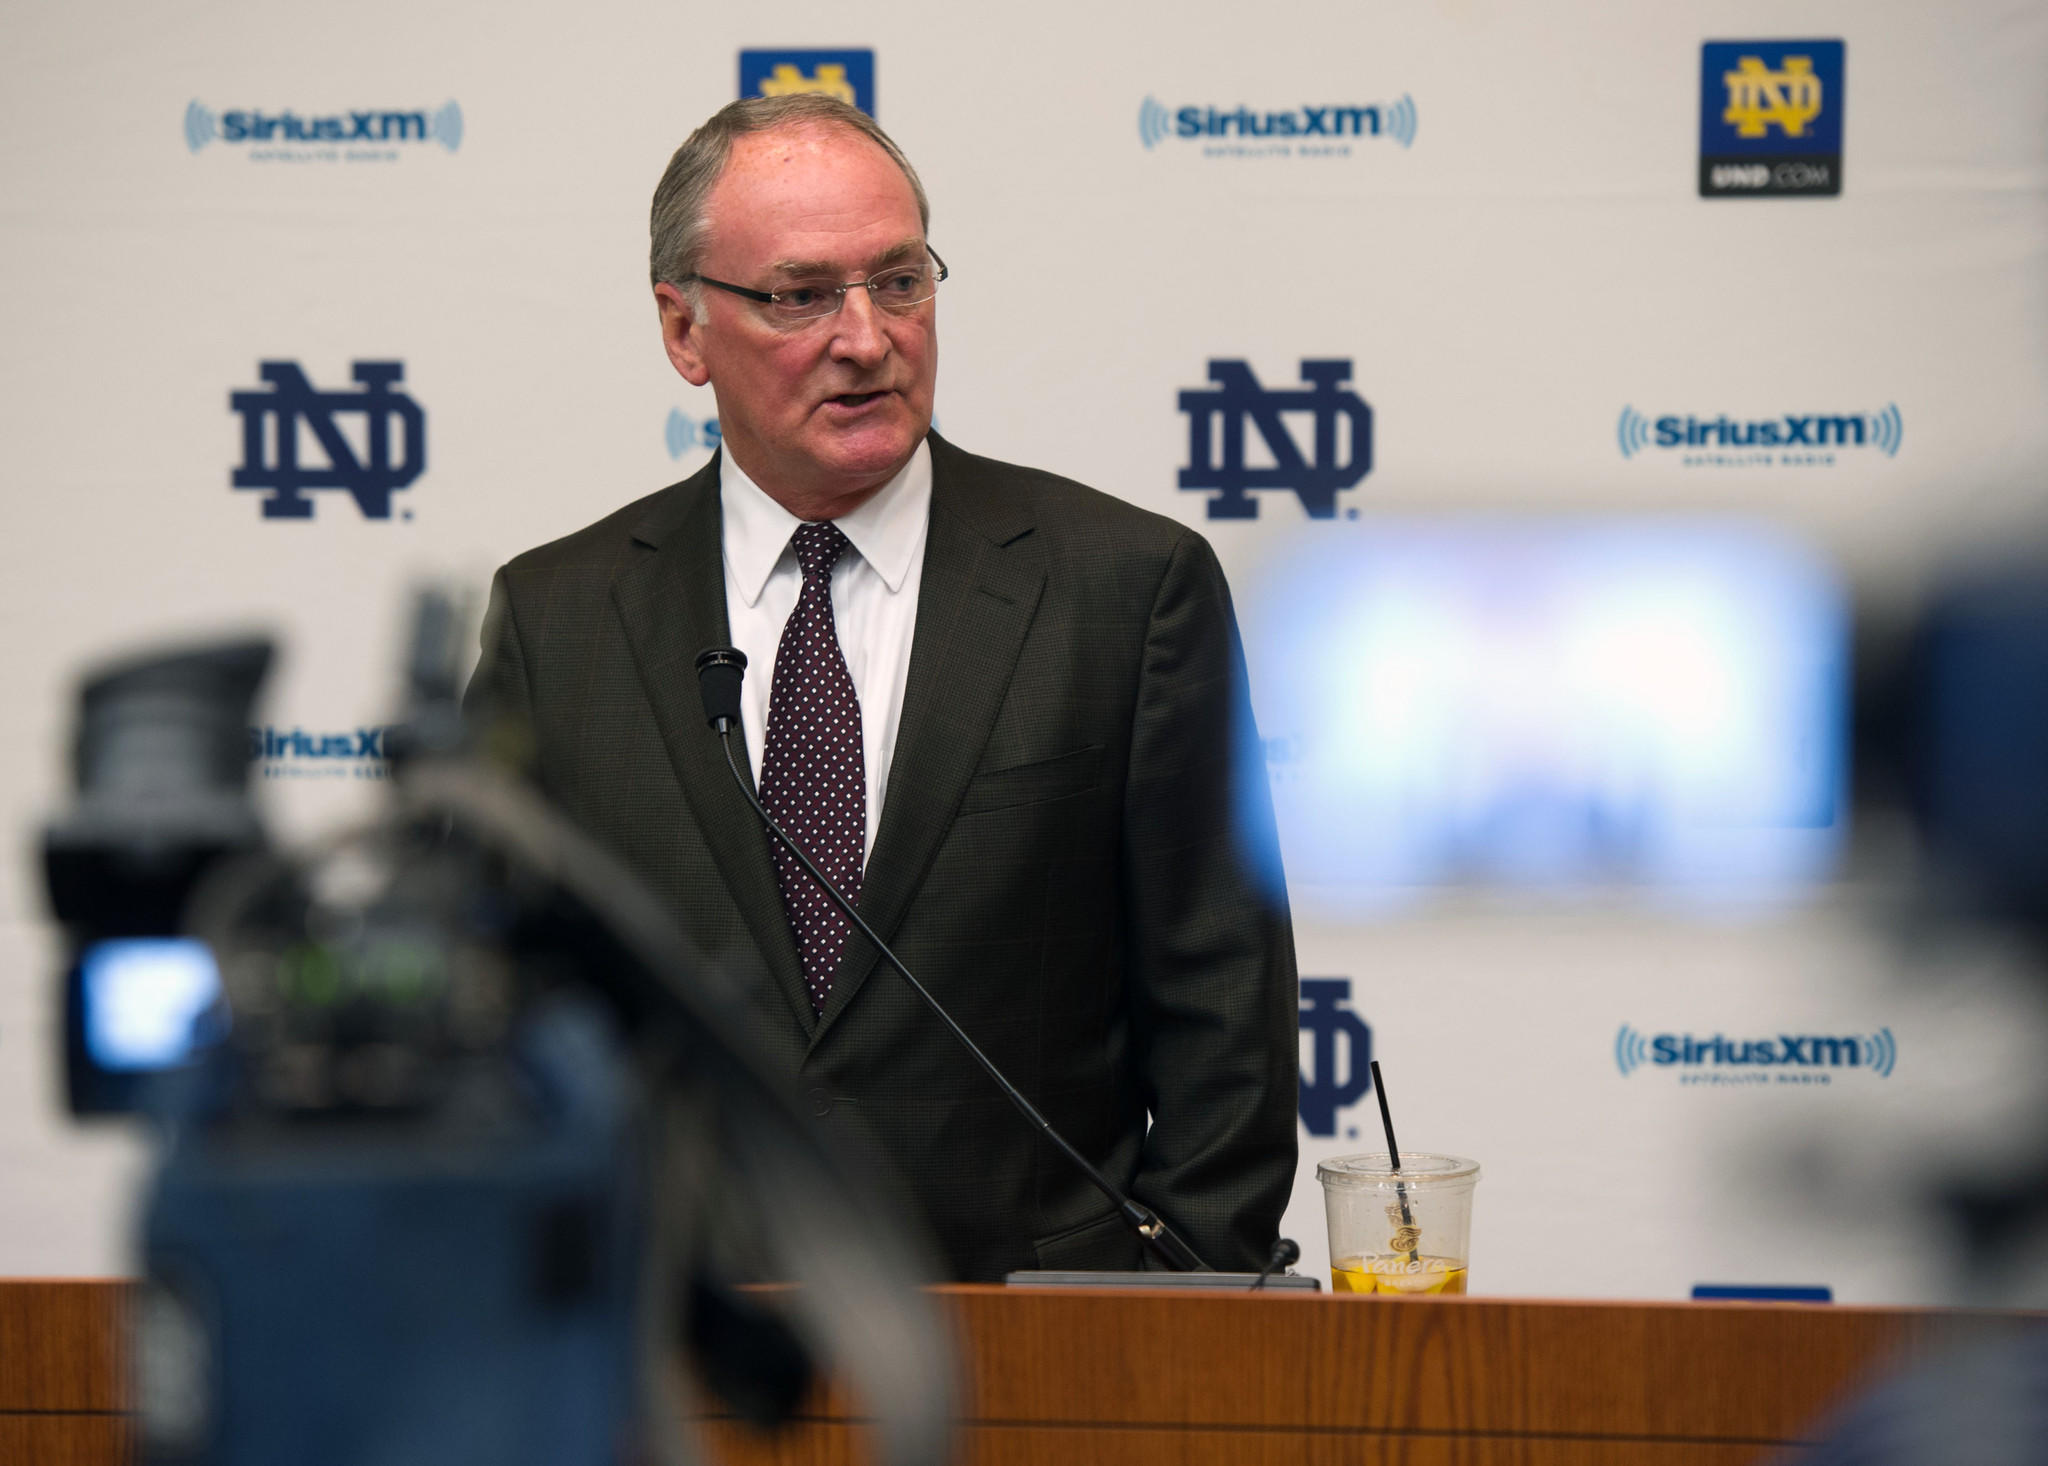 Notre Dame athletic director Jack Swarbrick at a press conference in January.